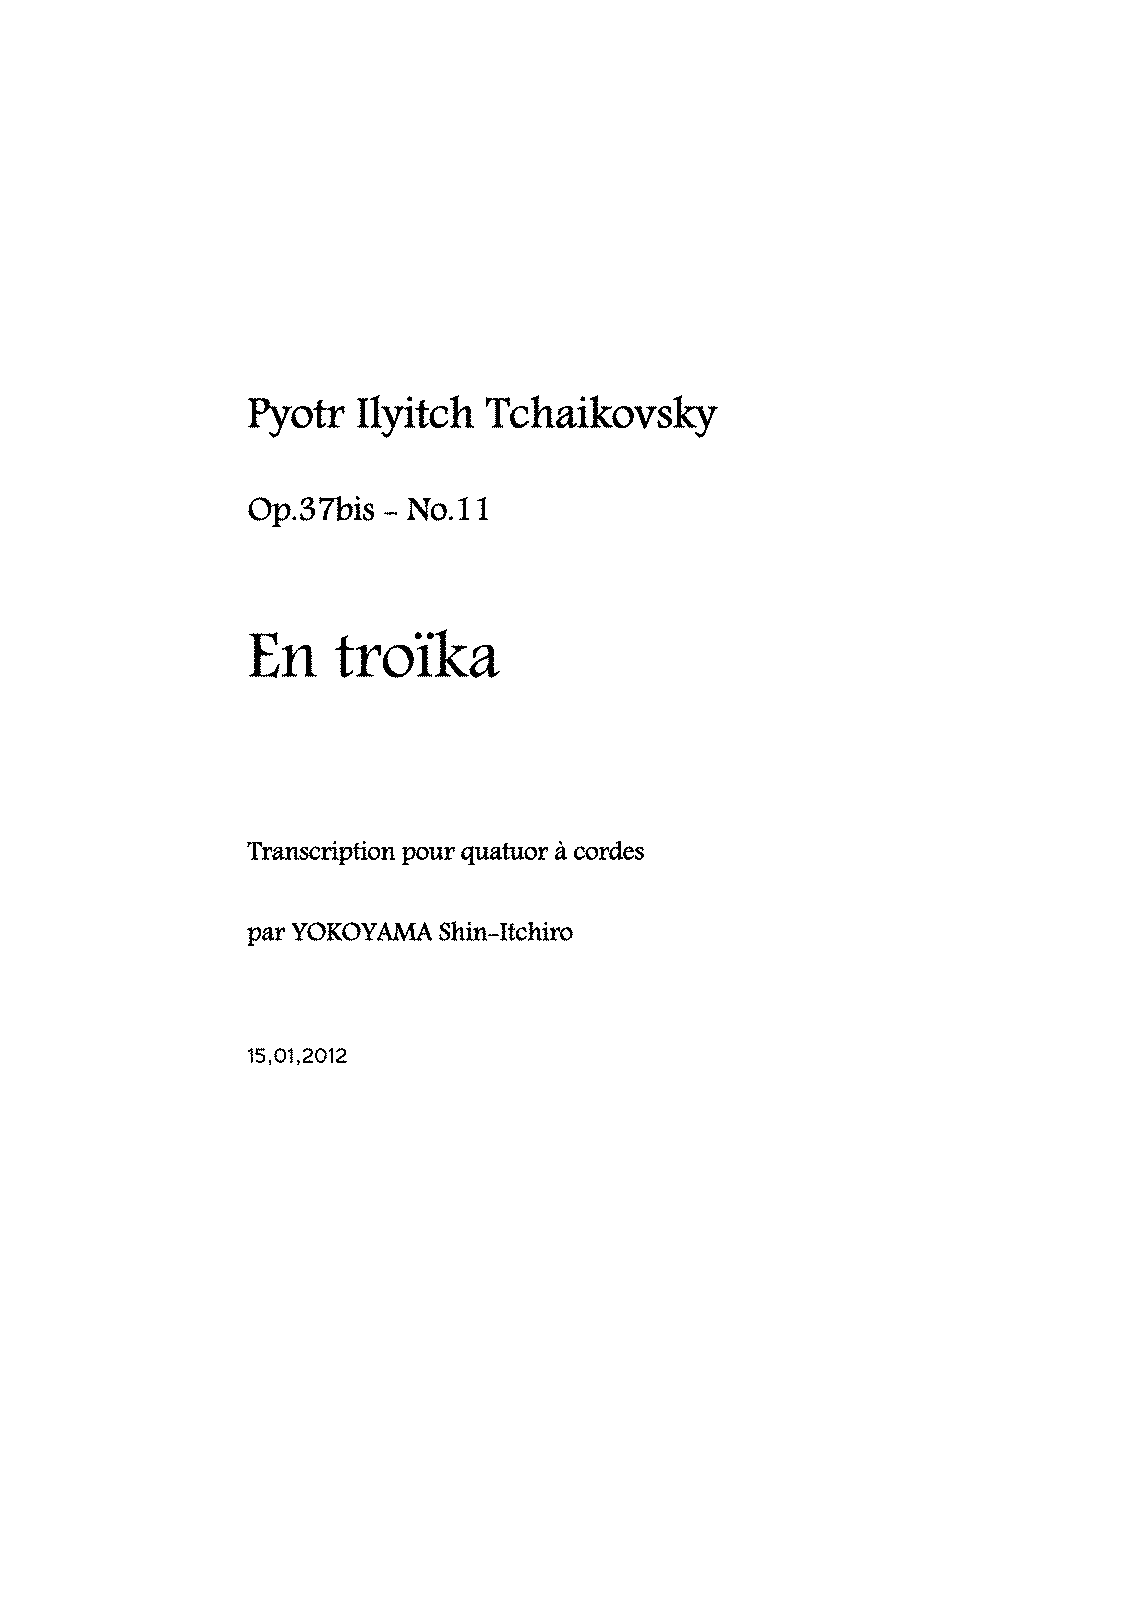 PMLP02716-Tchaikovsky Troika for string quartet.pdf